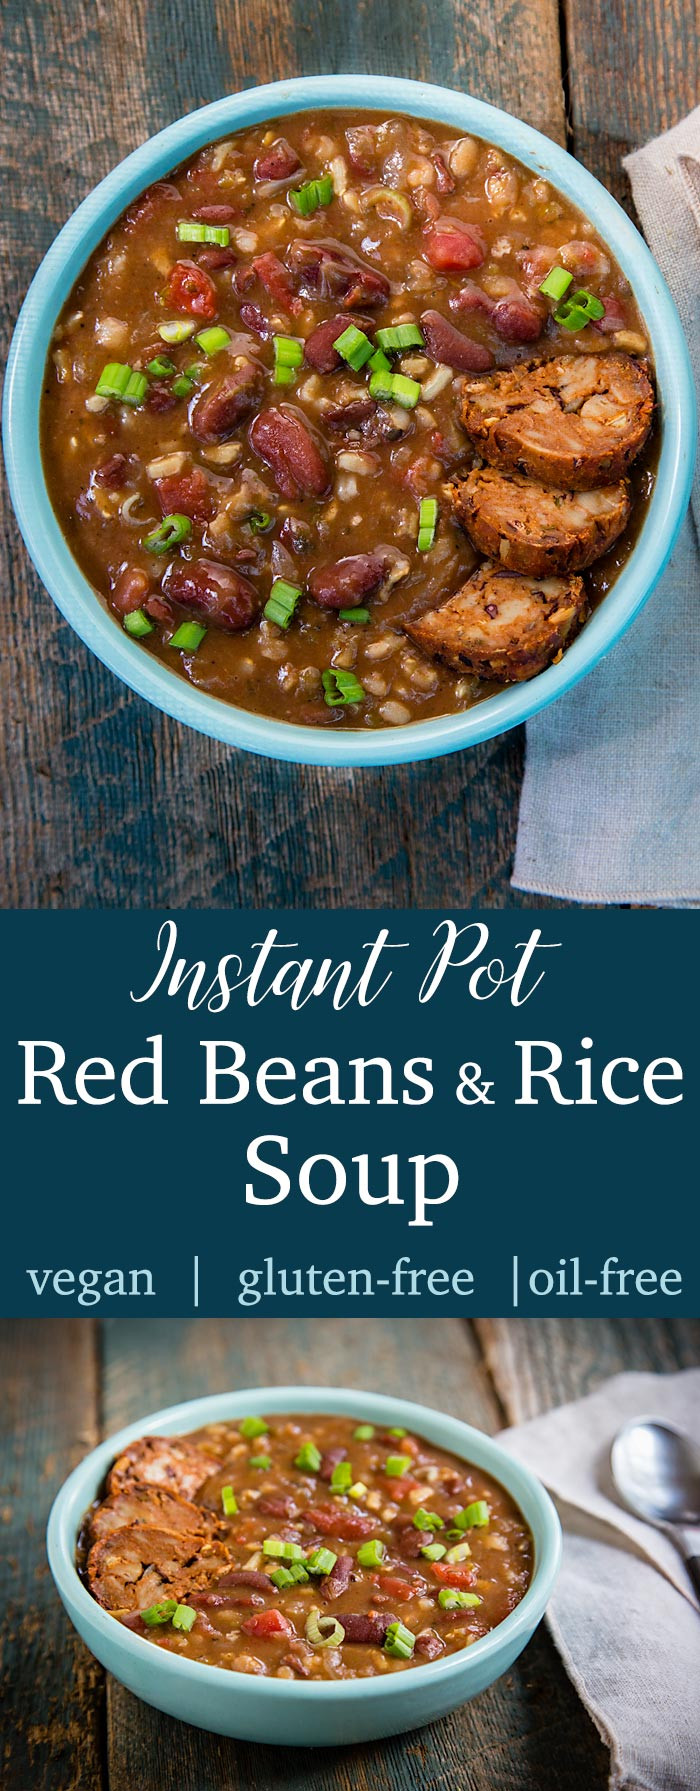 Red Beans And Rice Instant Pot  Instant Pot Red Beans and Rice Soup